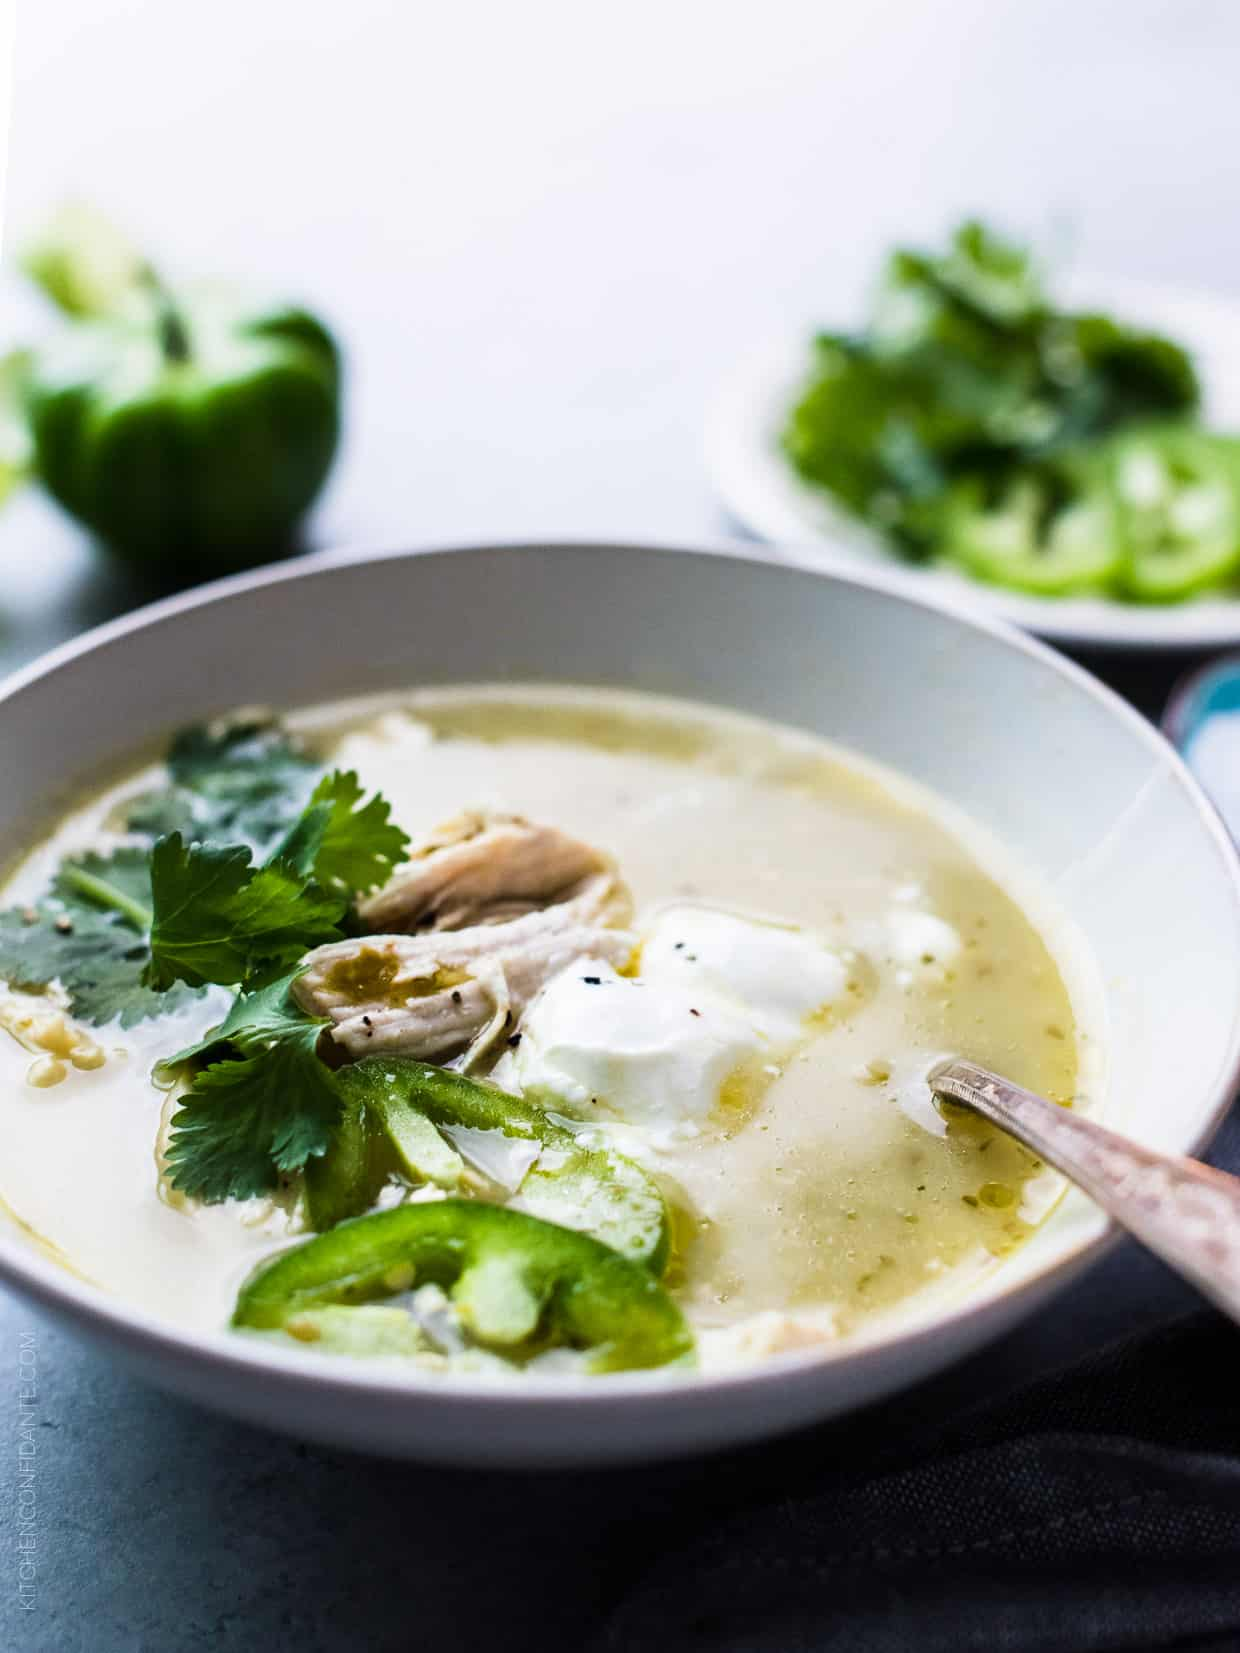 Roasted Tomatillo Chicken Soup - let the magic of roasted tomatillos and jalapeños warm you from the inside.